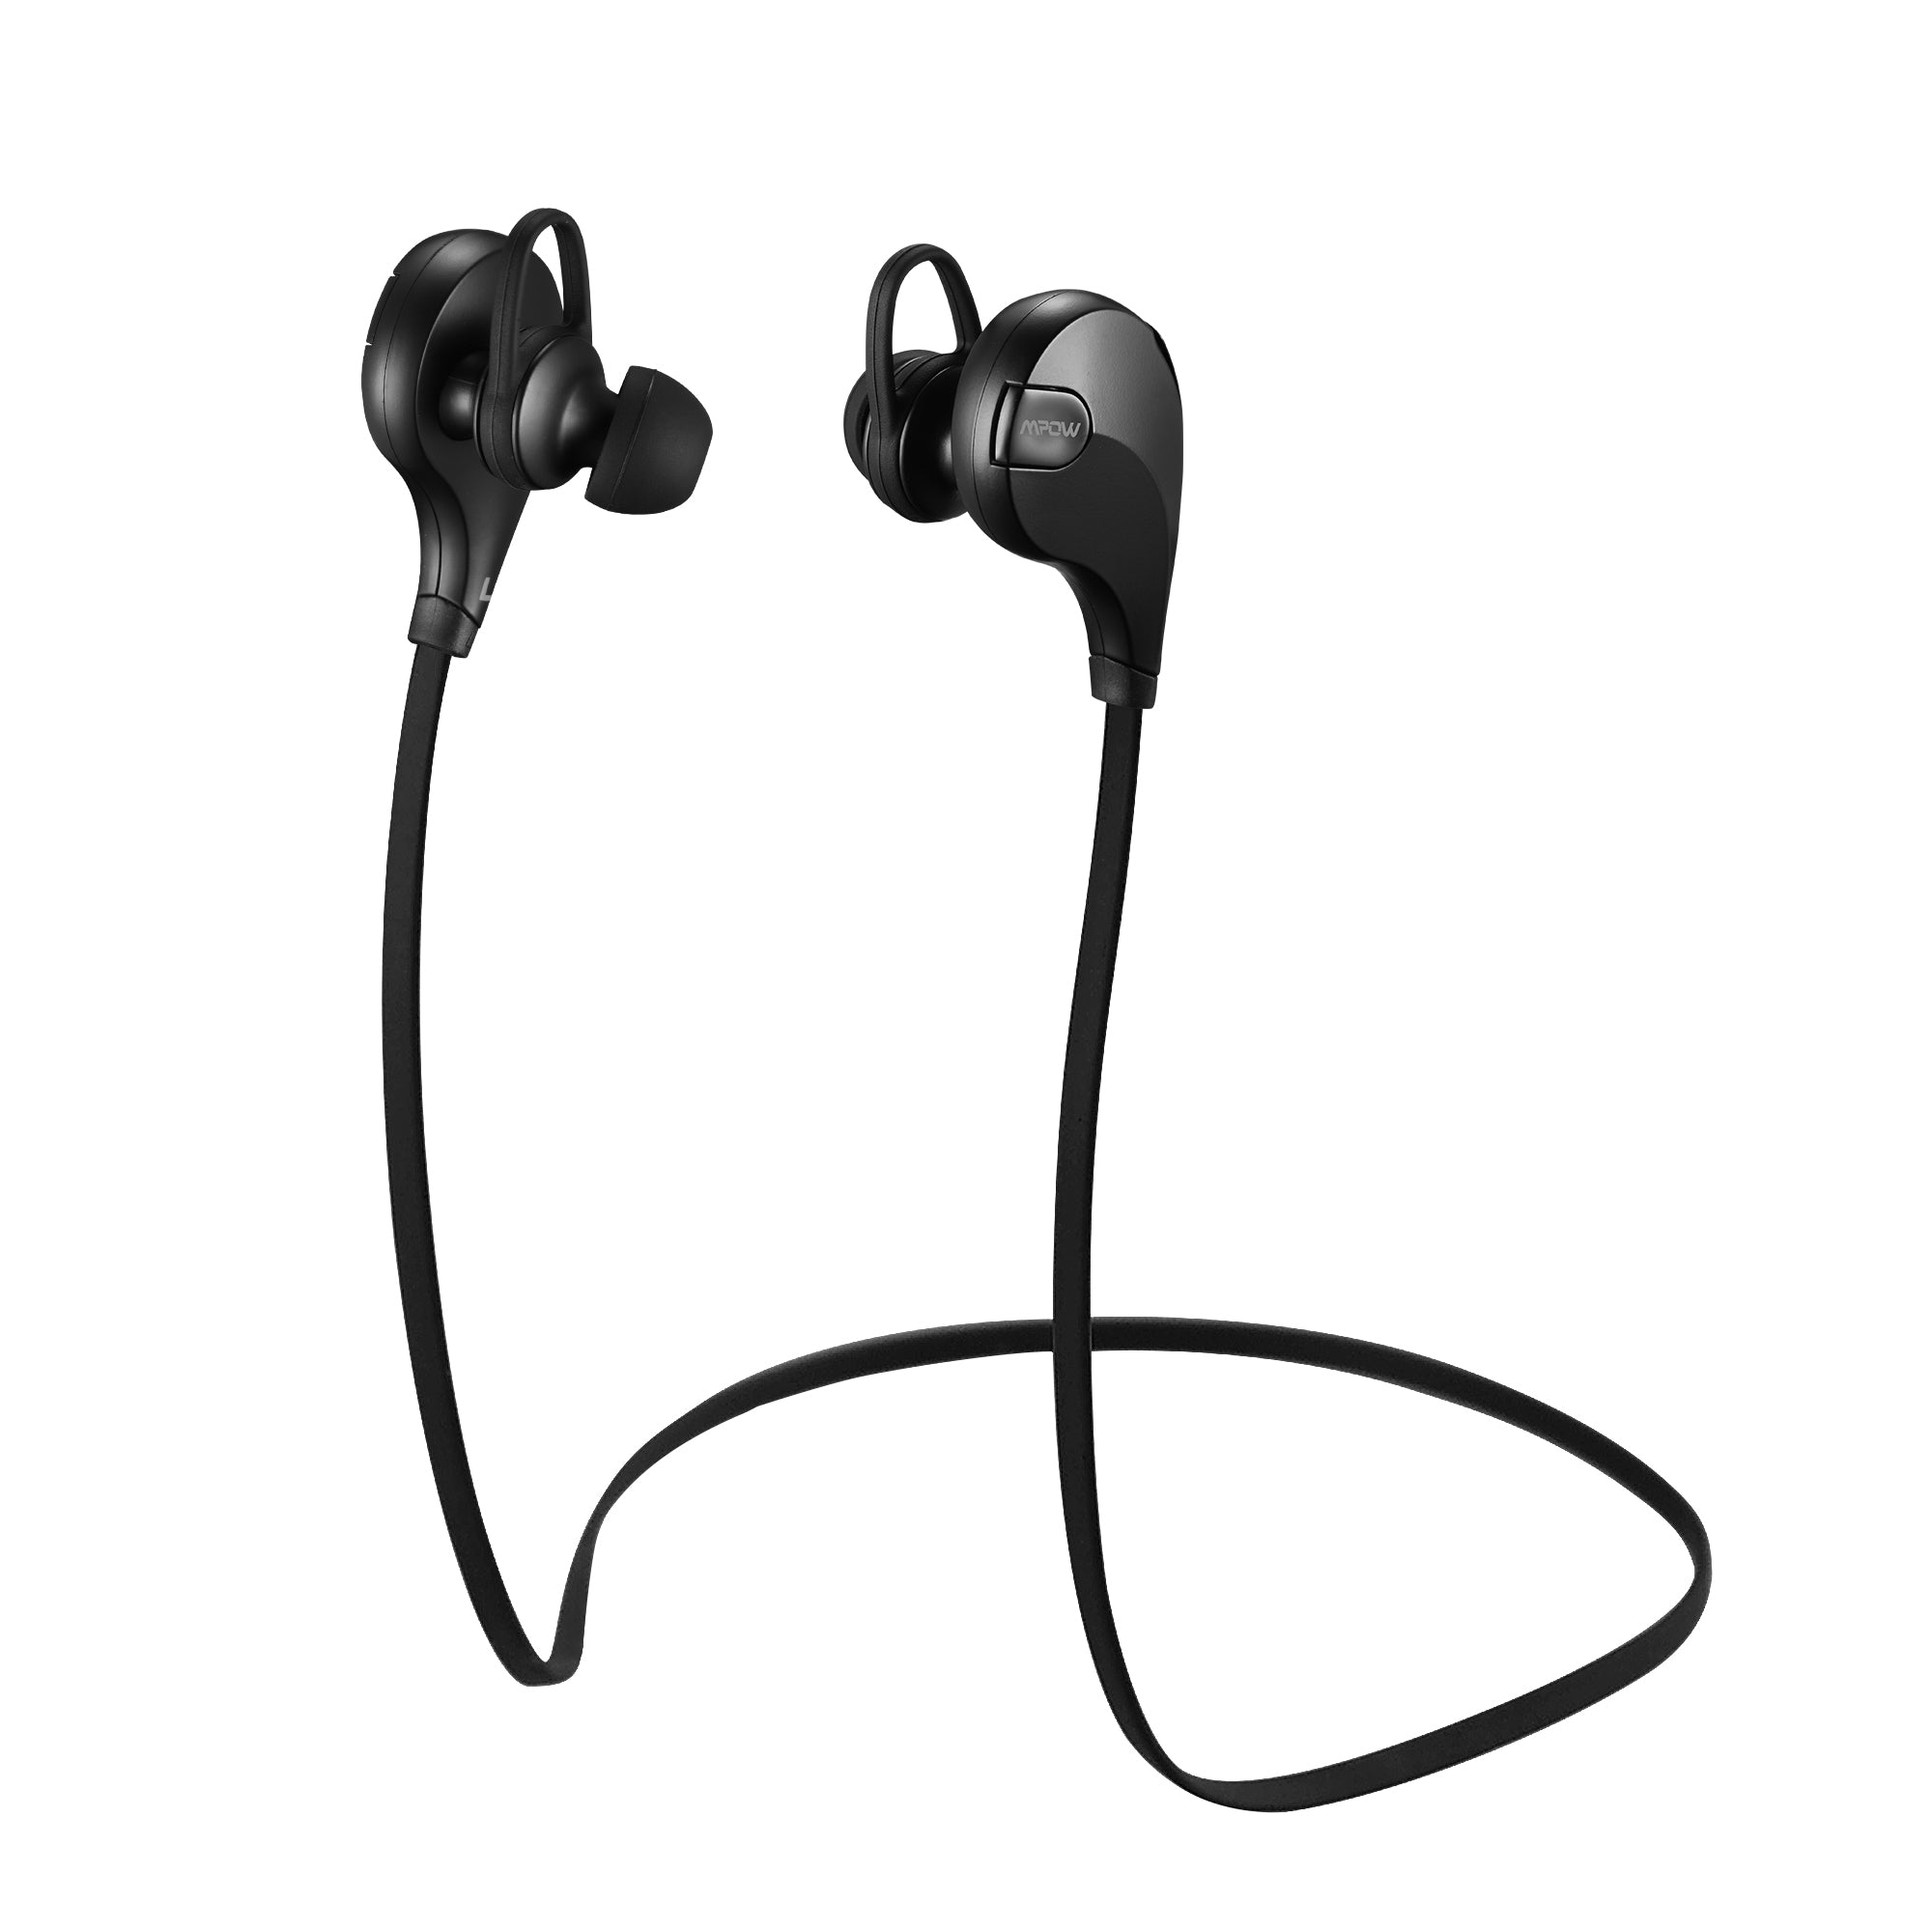 MPOW X1.0 Wireless In-Ear Headphones